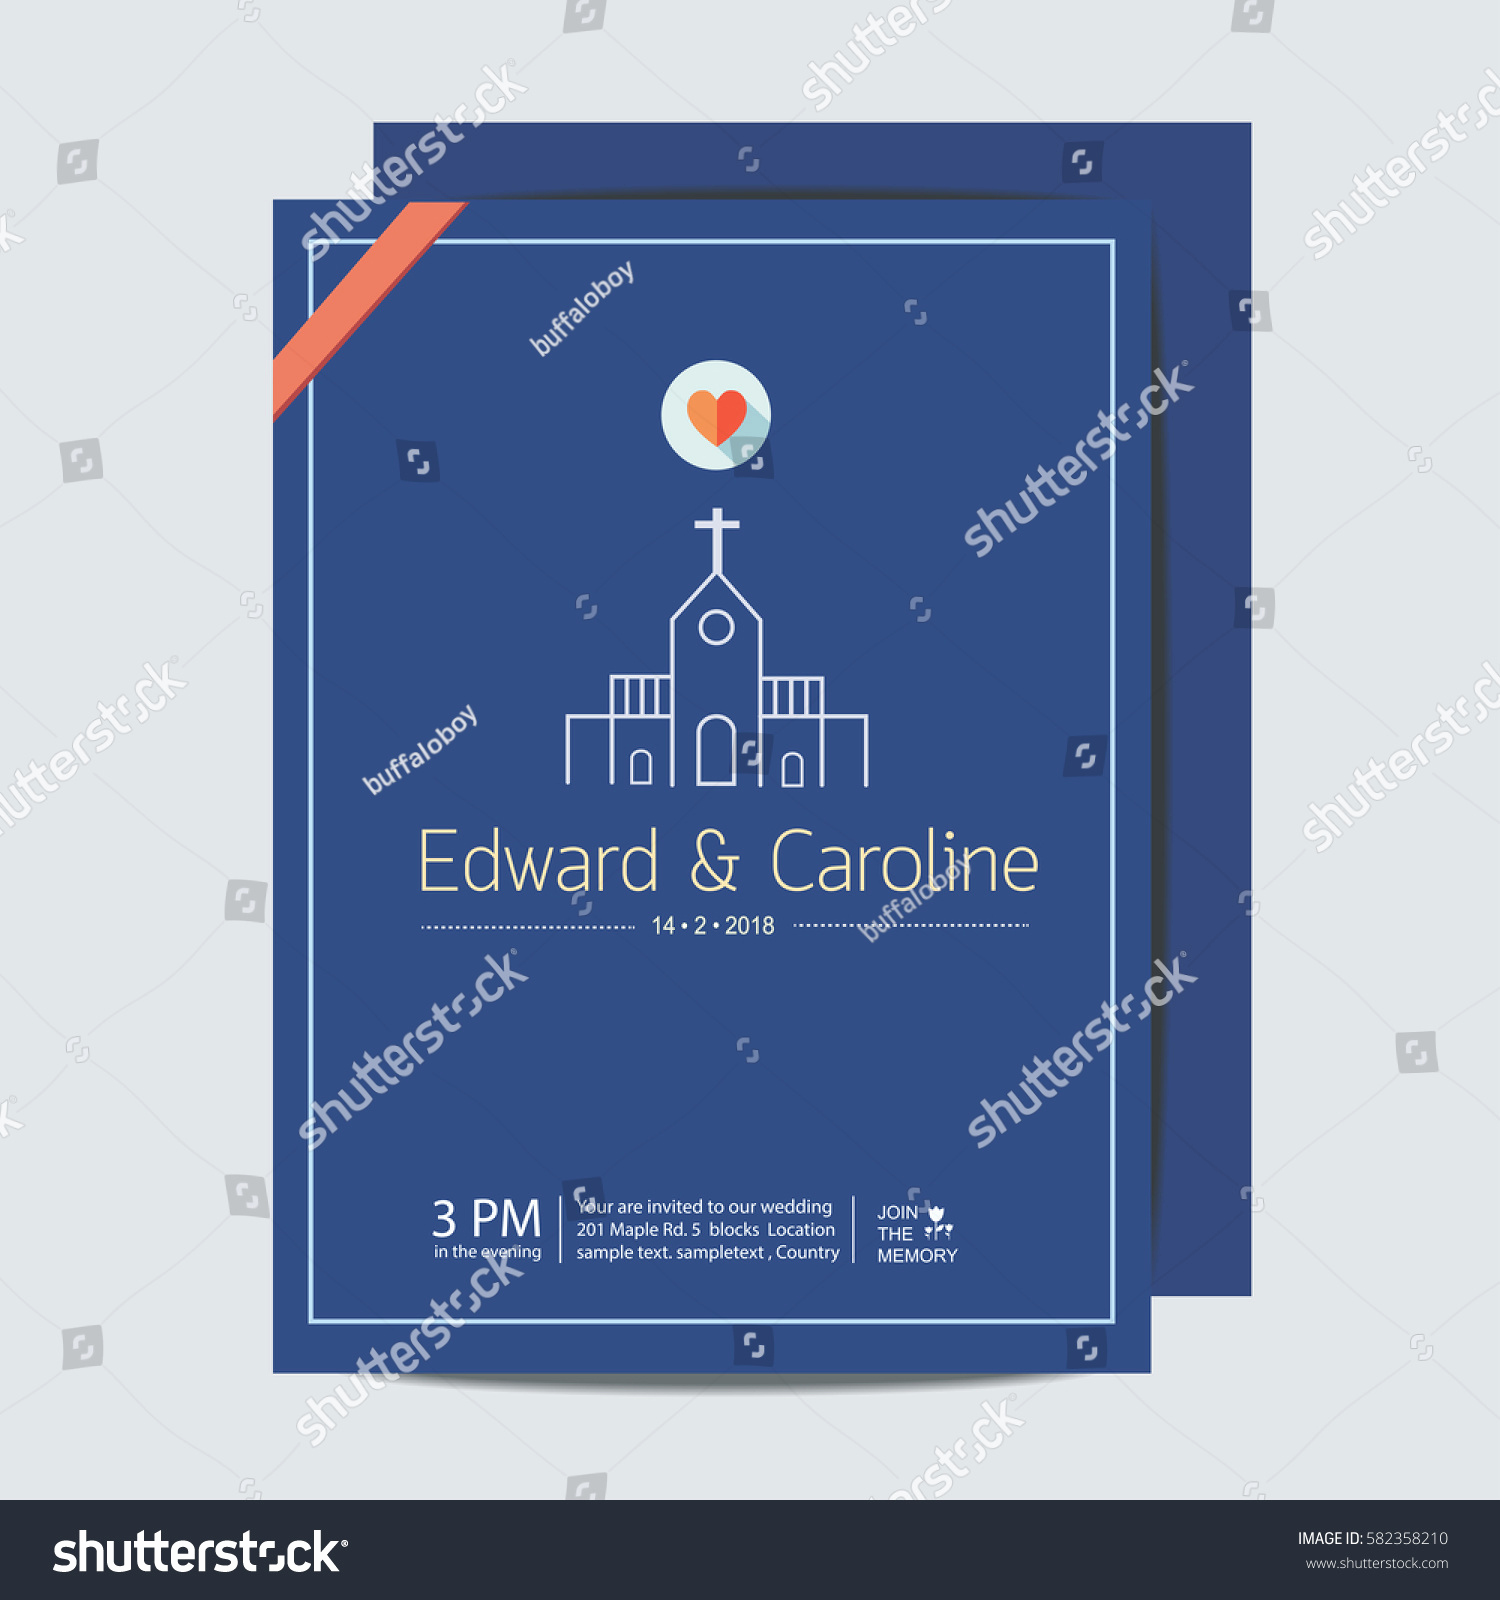 Church Invitation Cards Templates Elegant Church Invitation Templates Yourweek B5bdb8eca25e